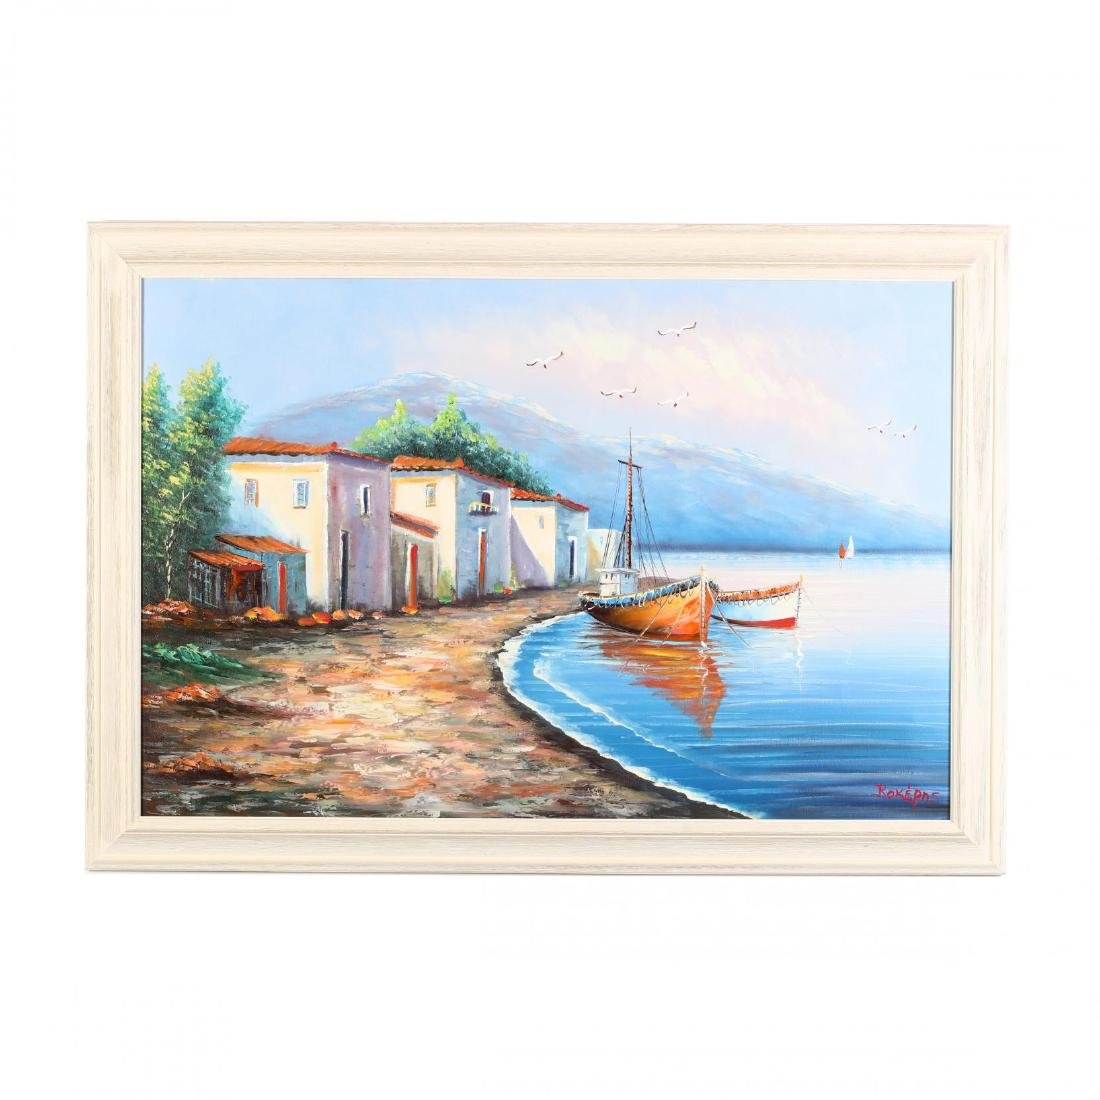 Painting of the Greek Island Syros